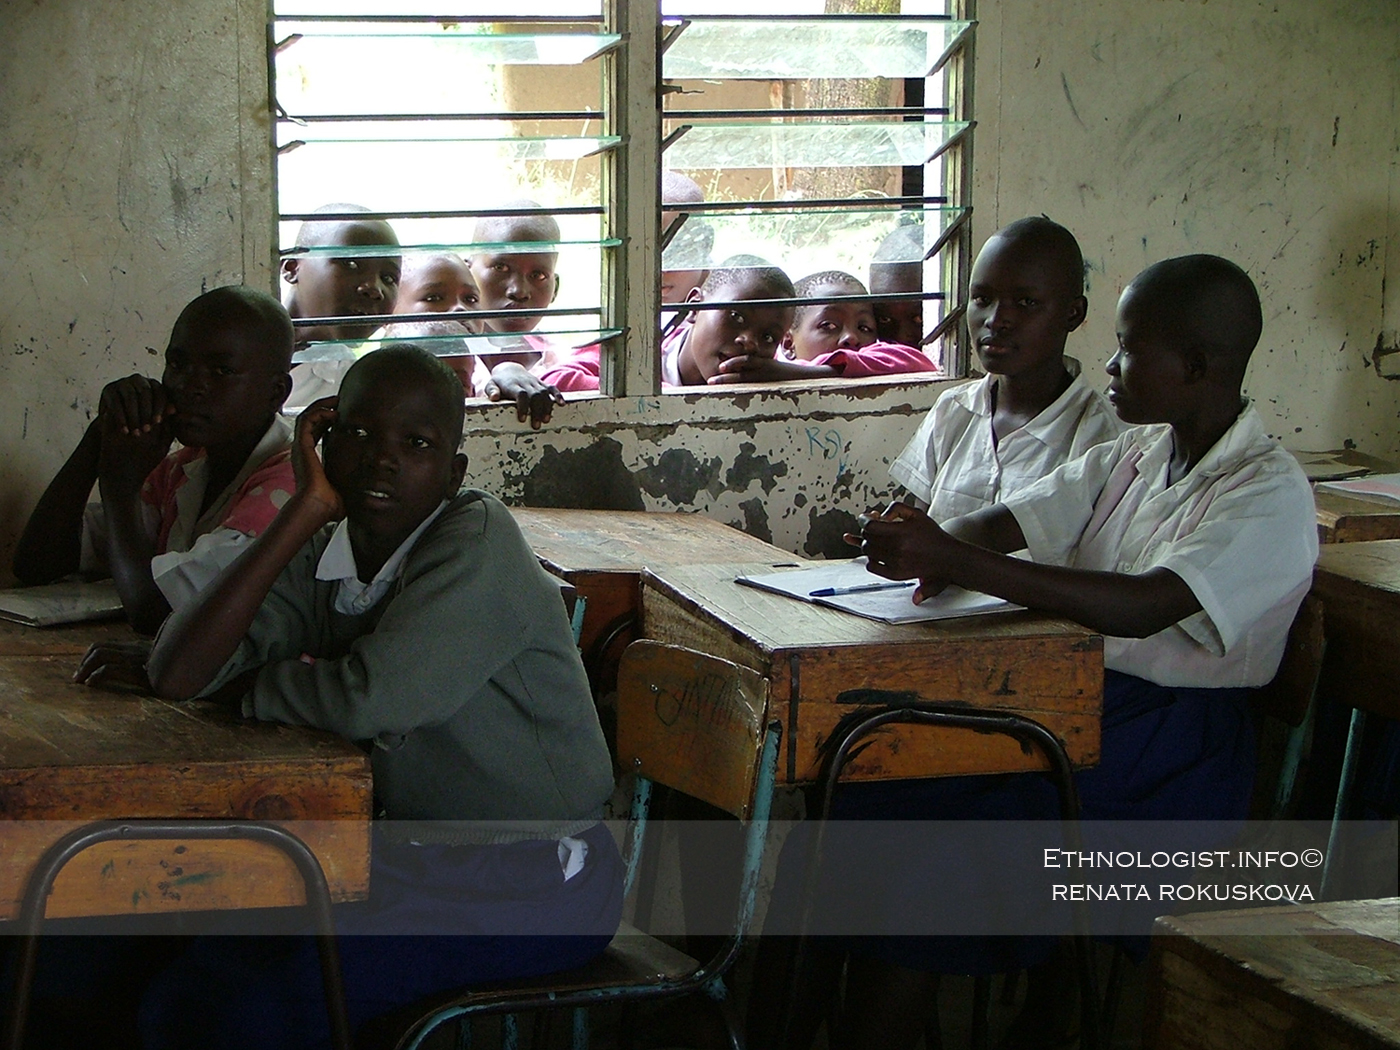 The offering of school programs in Kenyan school. Photo: Renata Rokuskova